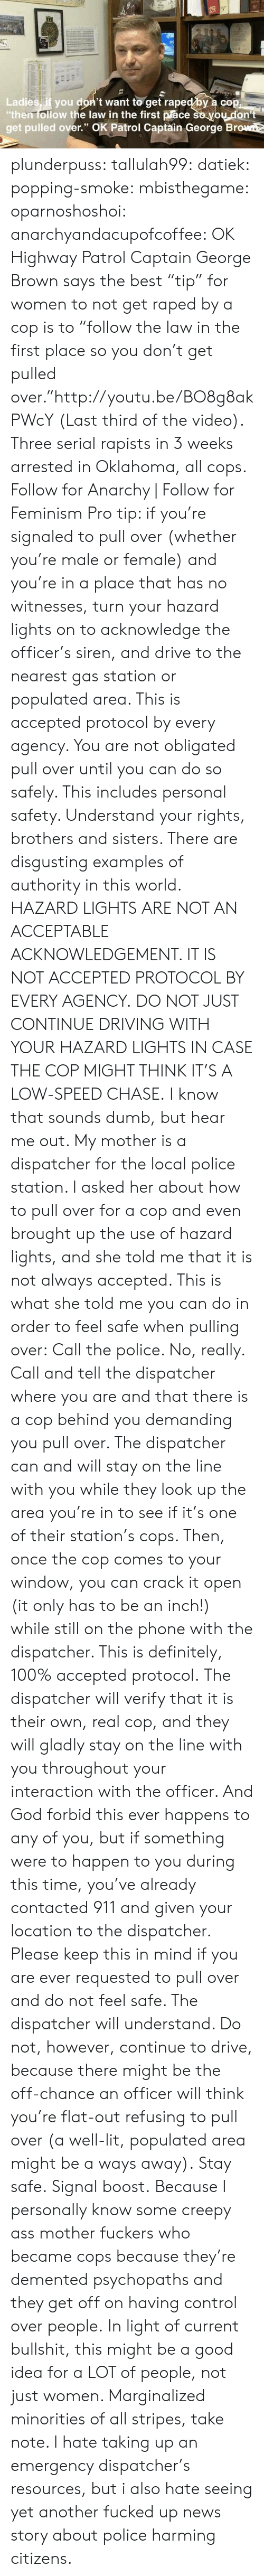 """Locale: Ladies,İf you don't want toget rapedbya cop  then follow the law in the first pace so you dont  get pulled over."""" OK Patrol Captain George Brow plunderpuss:  tallulah99:  datiek:  popping-smoke:  mbisthegame:  oparnoshoshoi:  anarchyandacupofcoffee:  OK Highway Patrol Captain George Brown says the best """"tip"""" for women to not get raped by a cop is to """"follow the law in the first place so you don't get pulled over.""""http://youtu.be/BO8g8akPWcY(Last third of the video). Three serial rapists in 3 weeks arrested in Oklahoma, all cops. Follow for Anarchy 